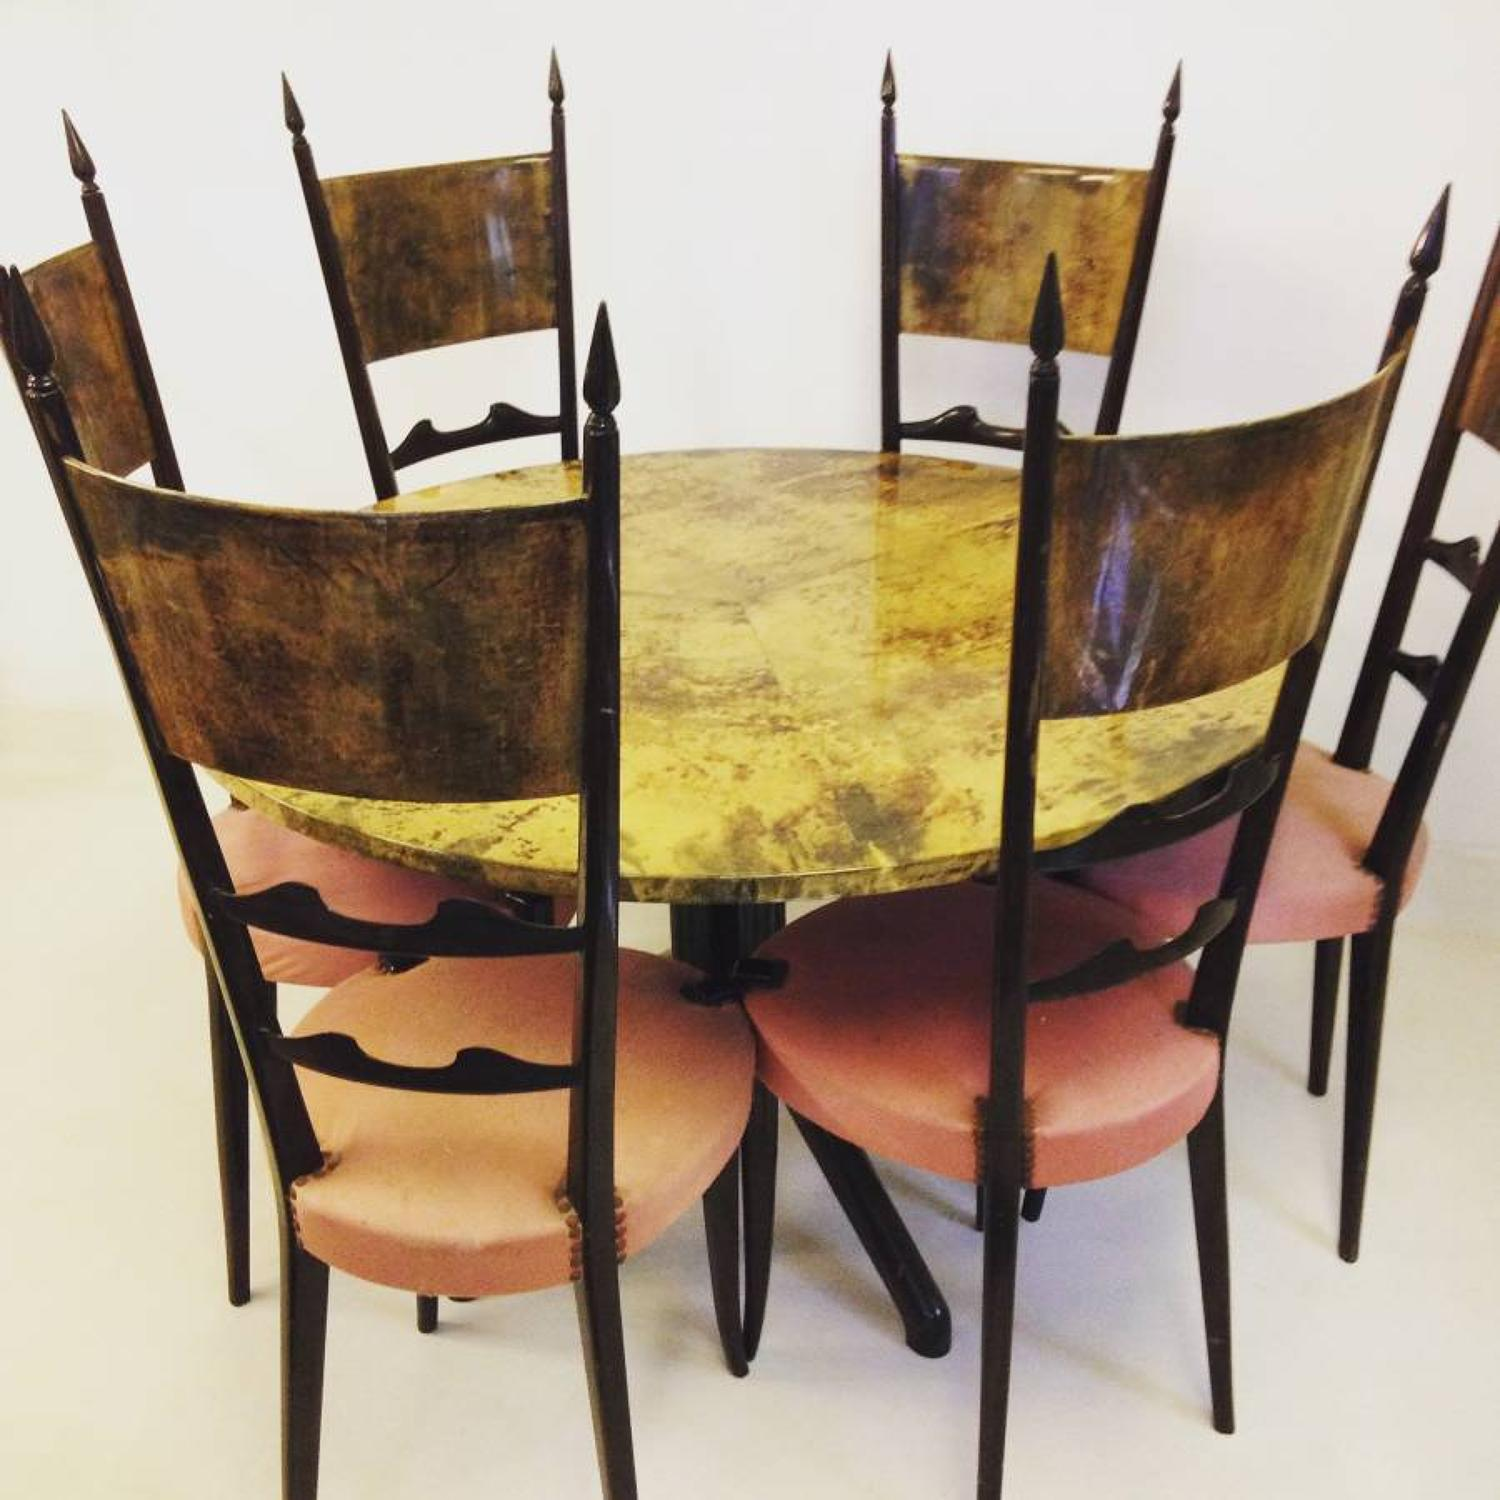 Dining table and six chairs by Aldo Tura